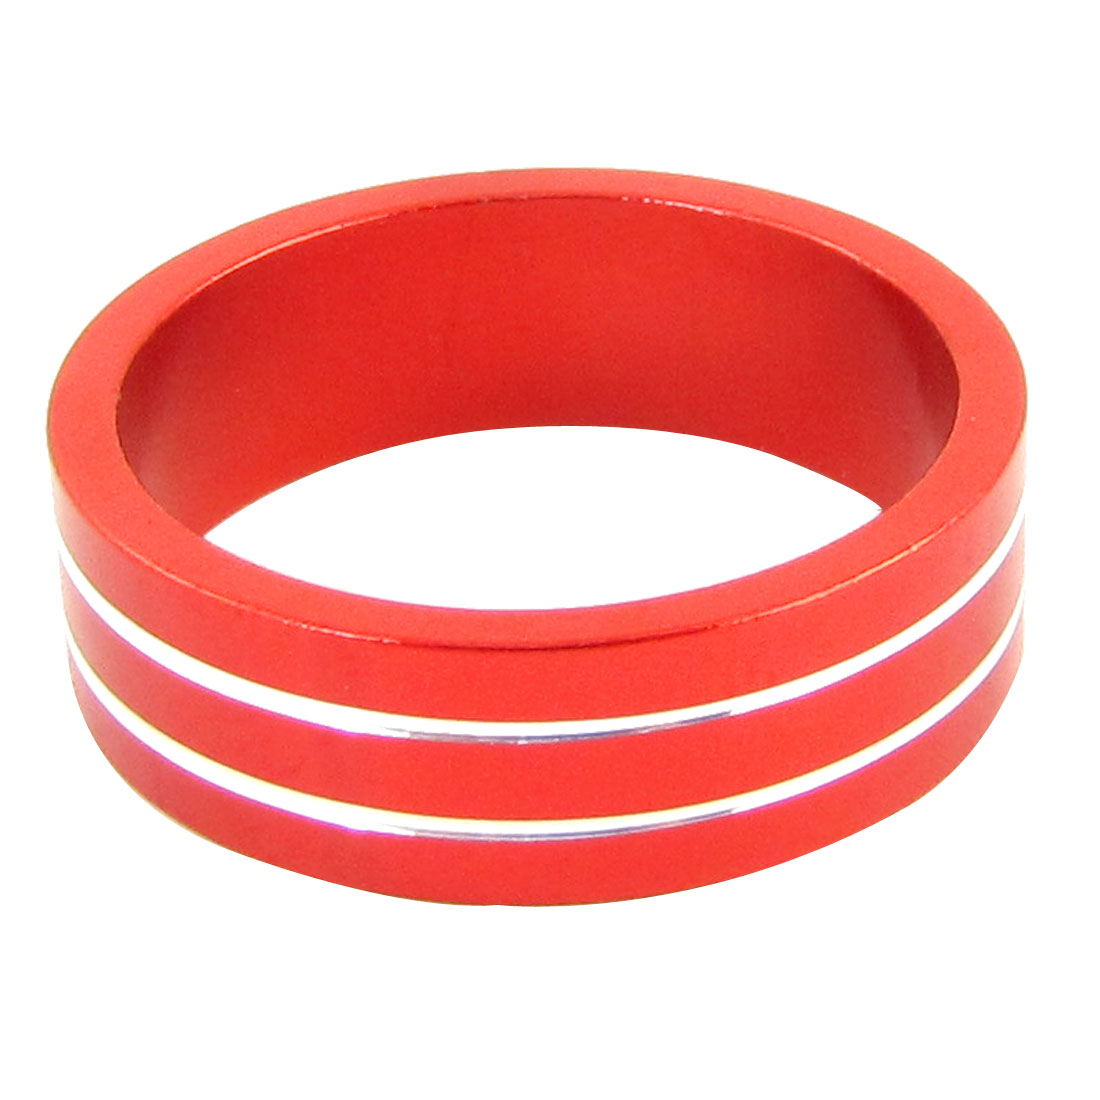 "1.1"" Diameter Mountain Bike Bicycle Repair Parts Headset Spacers Red"